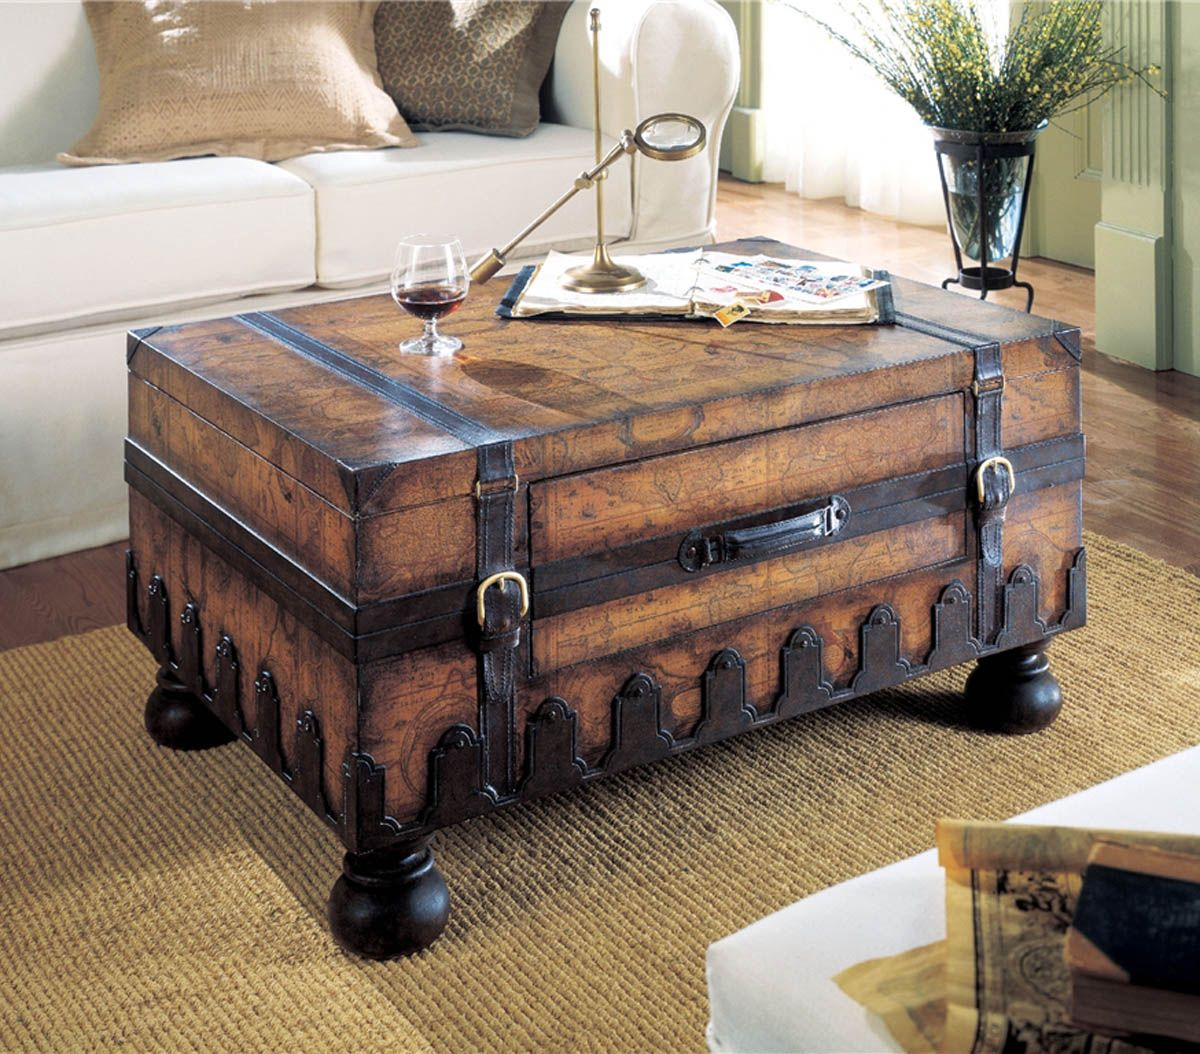 old trunks turned into beautiful vintage table sarah accent trunk contemporary home decor tray end metal frame coffee with wood top large gazebo target wine rack grey wicker